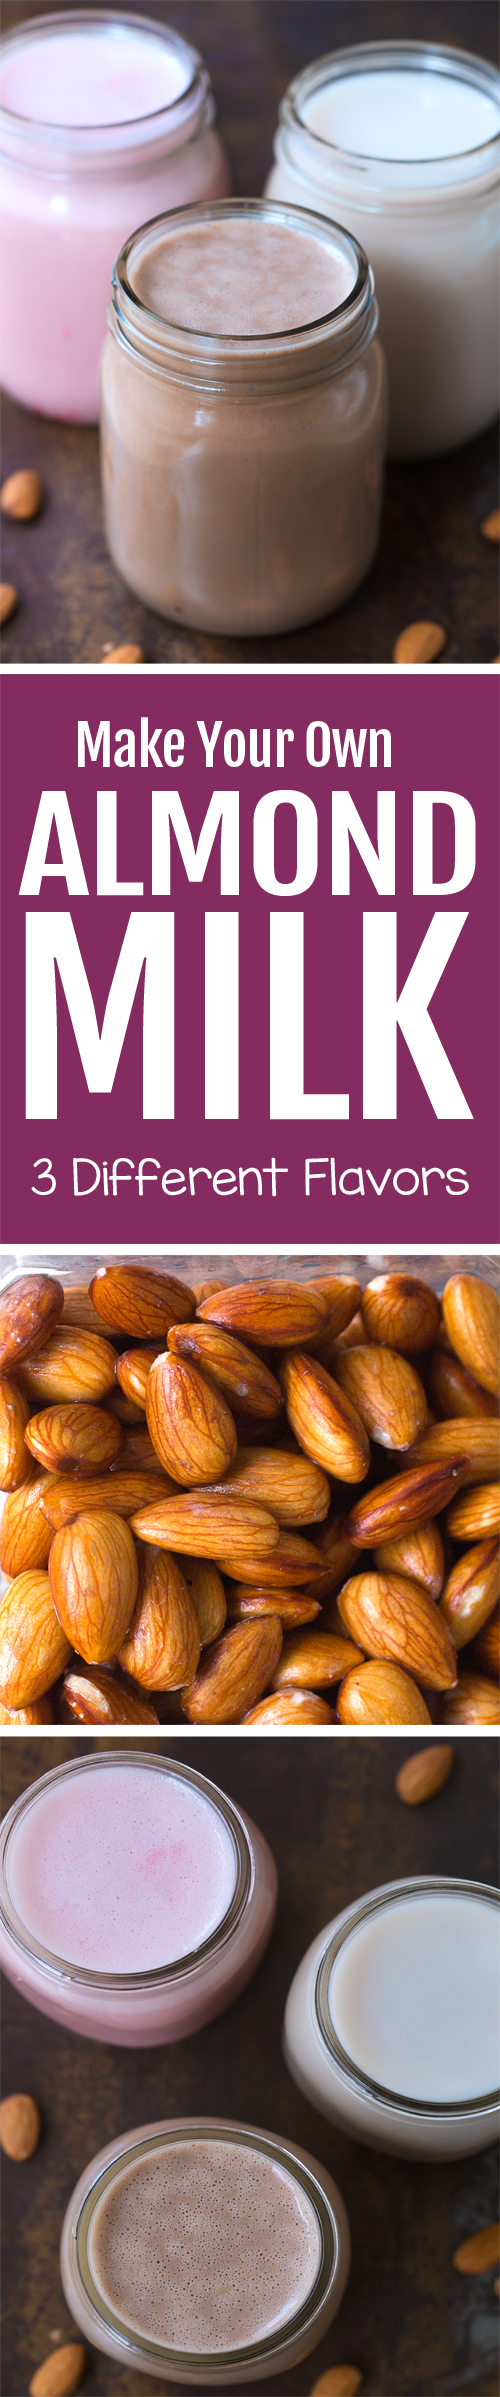 How to make your own almond milk, in chocolate, strawberry, and vanilla!